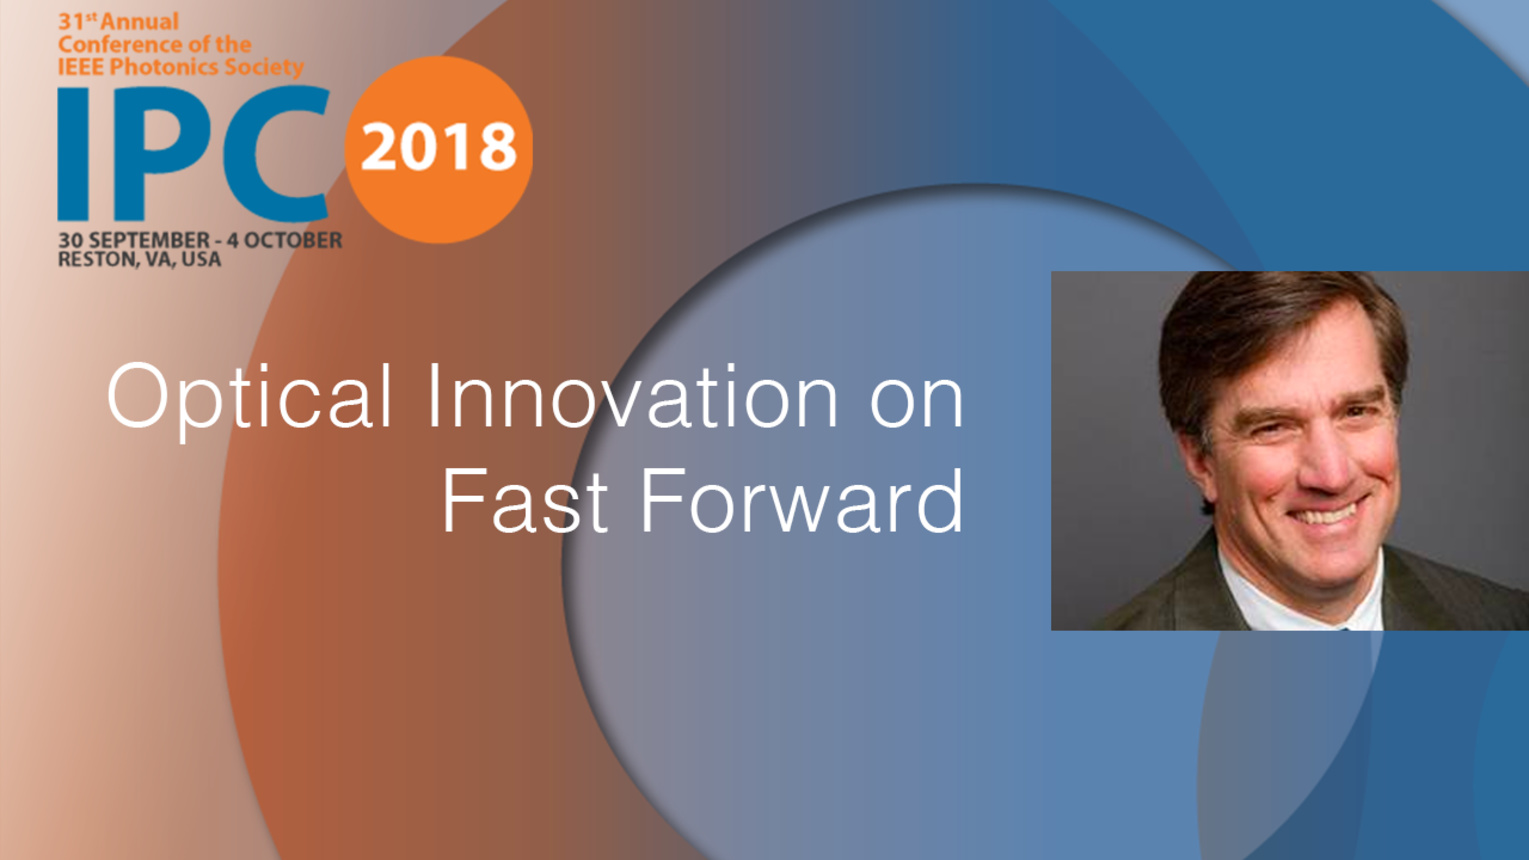 Optical Innovation on Fast Forward - Dave Welch - IPC 2018